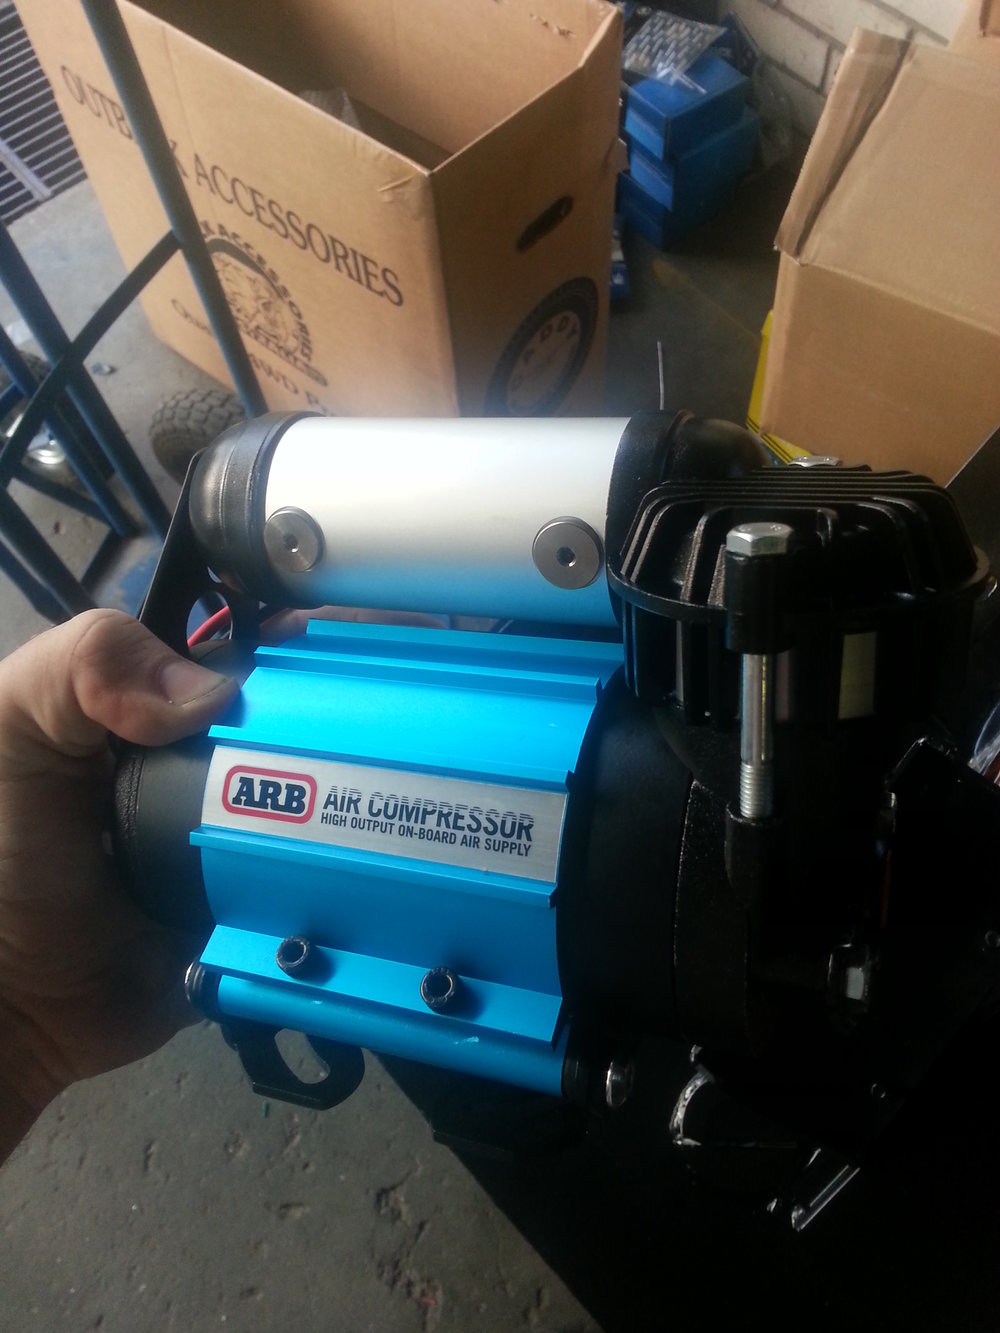 Air Compressor   ARB Compressor into a 2L Airtank and Airlocker kit.   Designed to withstand harsh Australian conditions, each ARB Air Compressor is individually leak tested, current draw tested and flow tested under heavy load at the factory before packing.  For total peace of mind, all ARB compressors come with a comprehensive 2 year warranty. To further increase longevity, ARB compressors are also rebuildable, with spare parts readily available from our extensive network of stores and stockists.